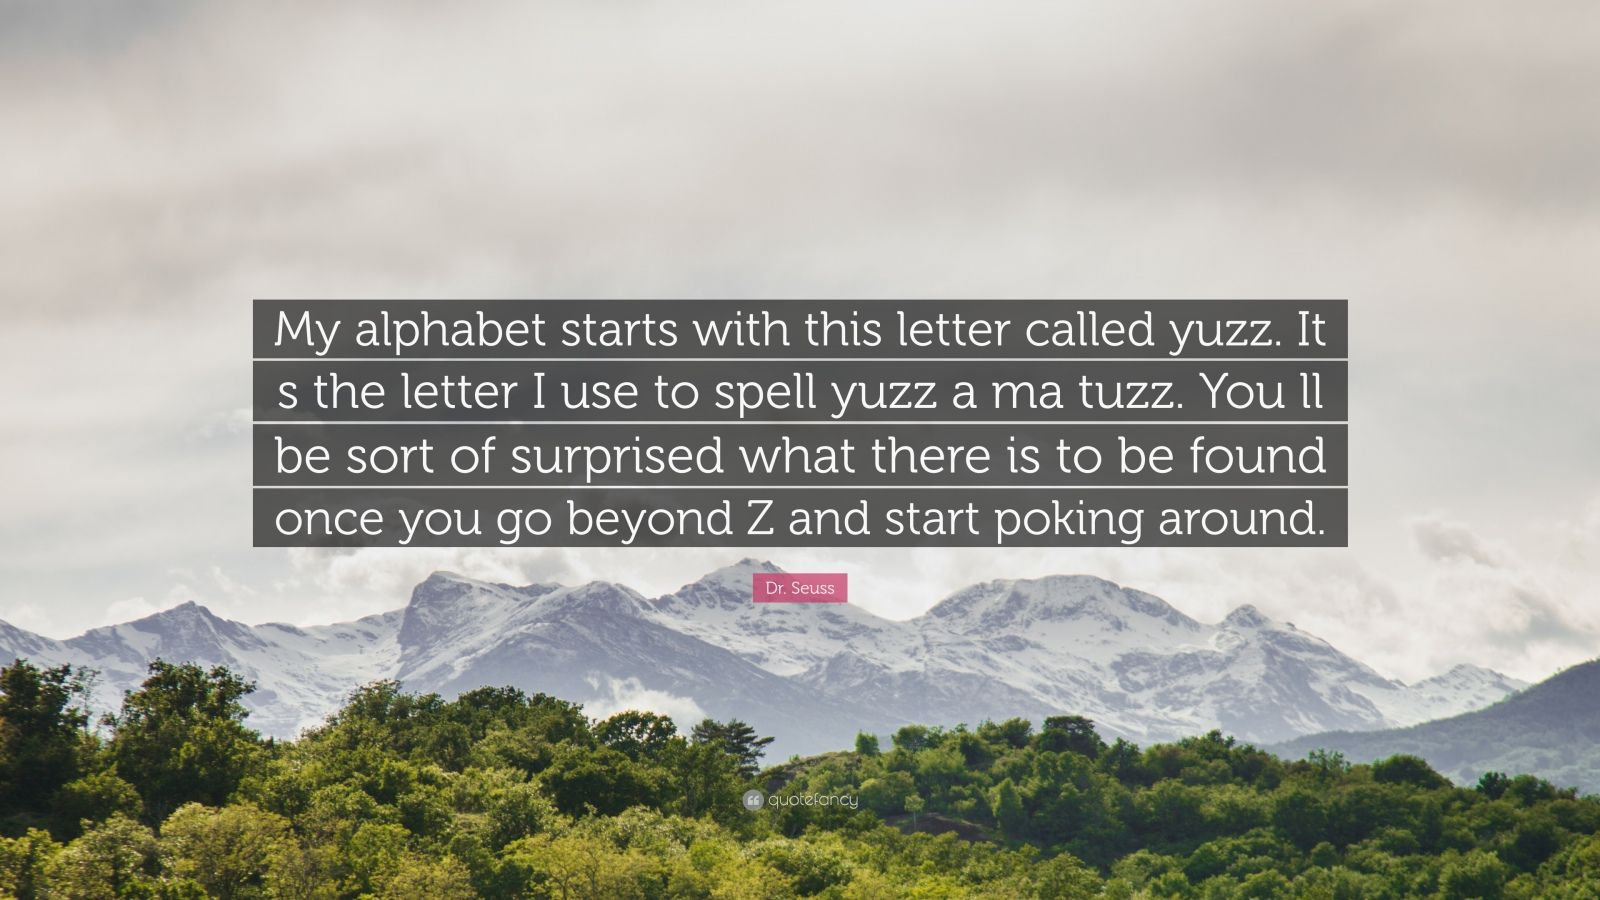 """Dr. Seuss Quote: """"My alphabet starts with this letter called yuzz. It s the letter I use to spell yuzz a ma tuzz. You ll be sort of surprised what there is to be found once you go beyond Z and start poking around."""""""